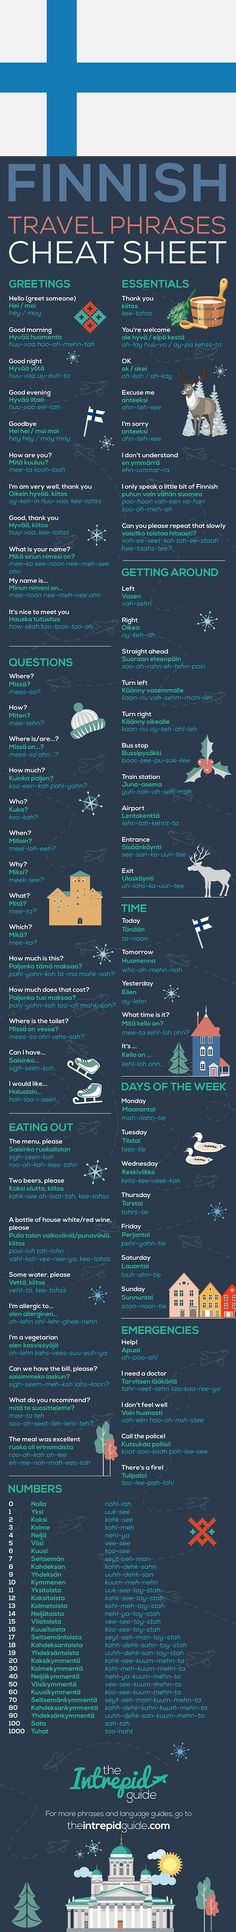 Going to Finland? Learn how to say 'hello', 'please', and 'thank you' in Finnish (Suomi) plus other common phrases in Finnish that will impress the locals. Best Travel Quotes, Travel Advice, Travel Tips, Travel Ideas, Travel Destinations, Best Language Learning Apps, Learn A New Language, Language Study, Finnish Language